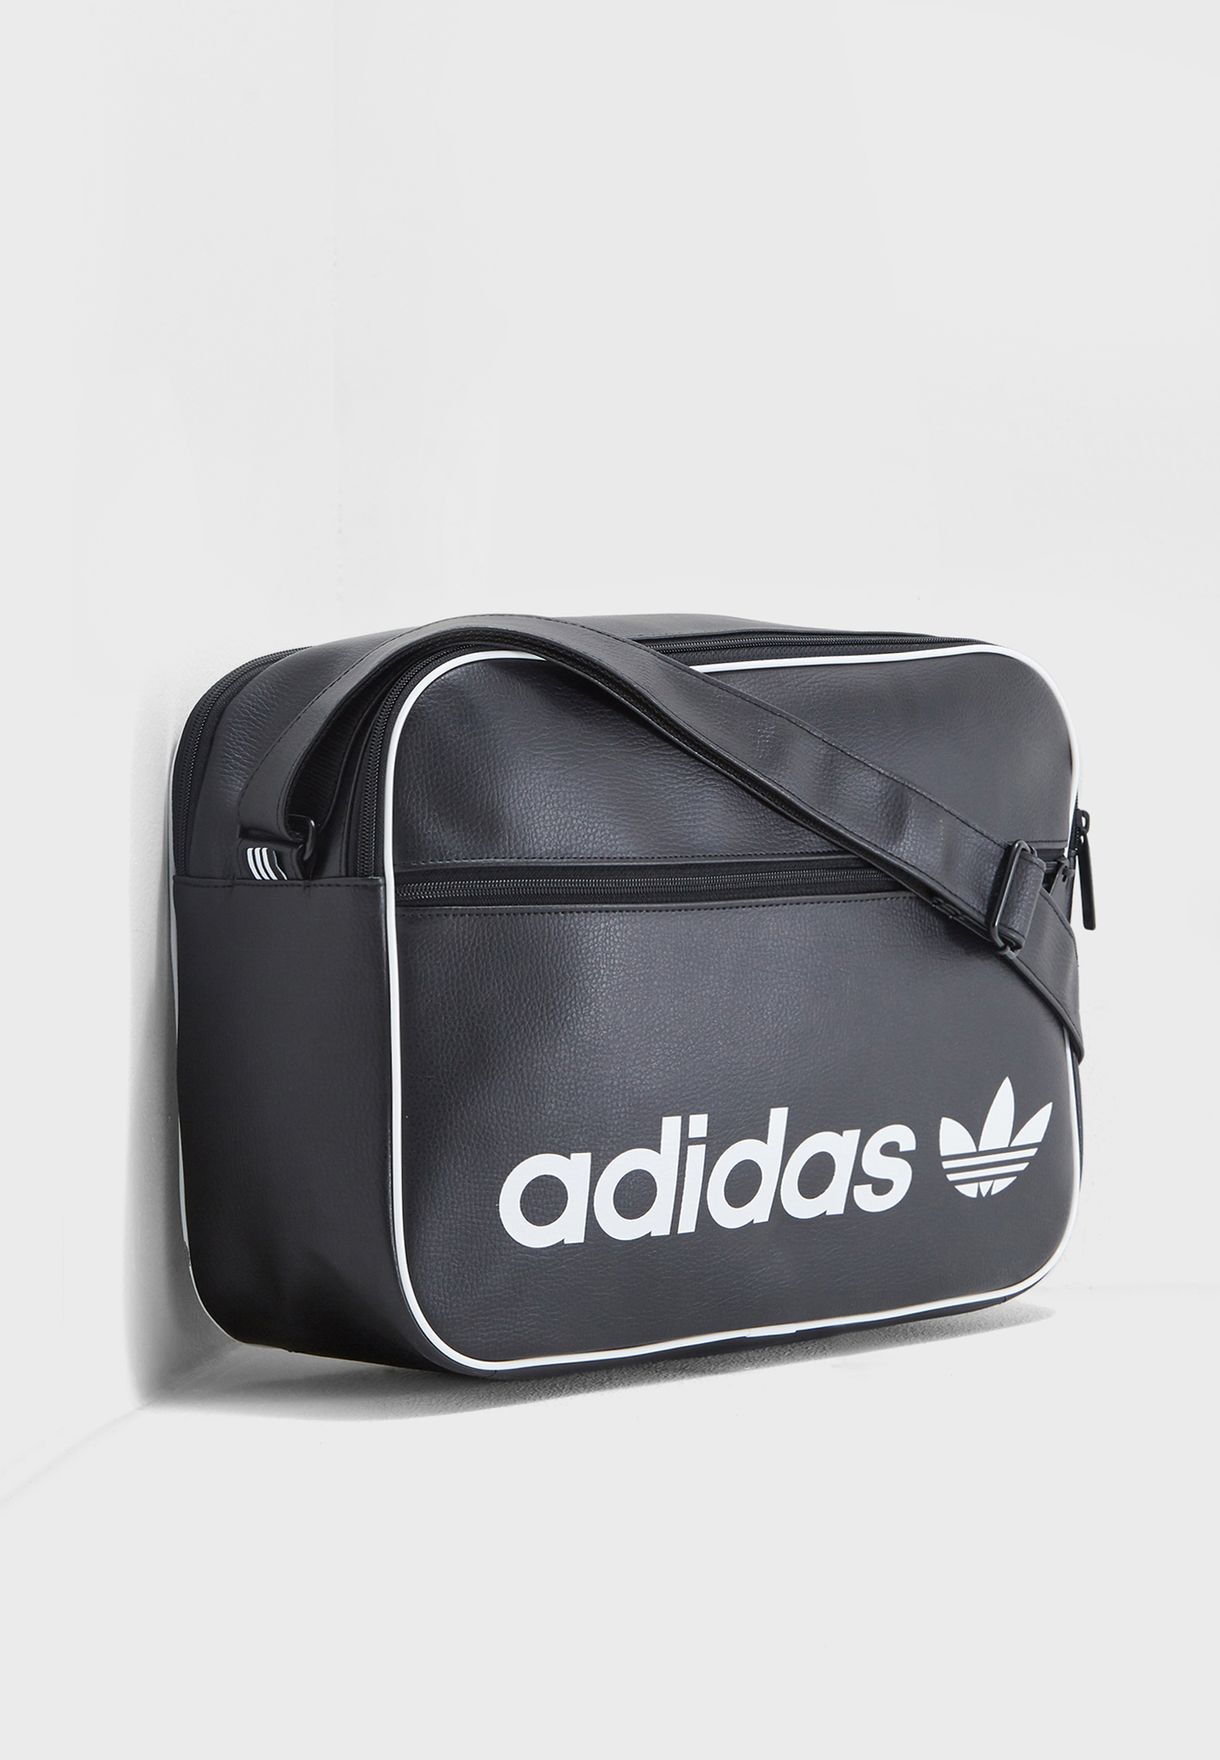 3e52e231a5bf Shop adidas Originals black Airliner Vintage Messenger DH1002 for Men in  Saudi - AD478AC82DUV